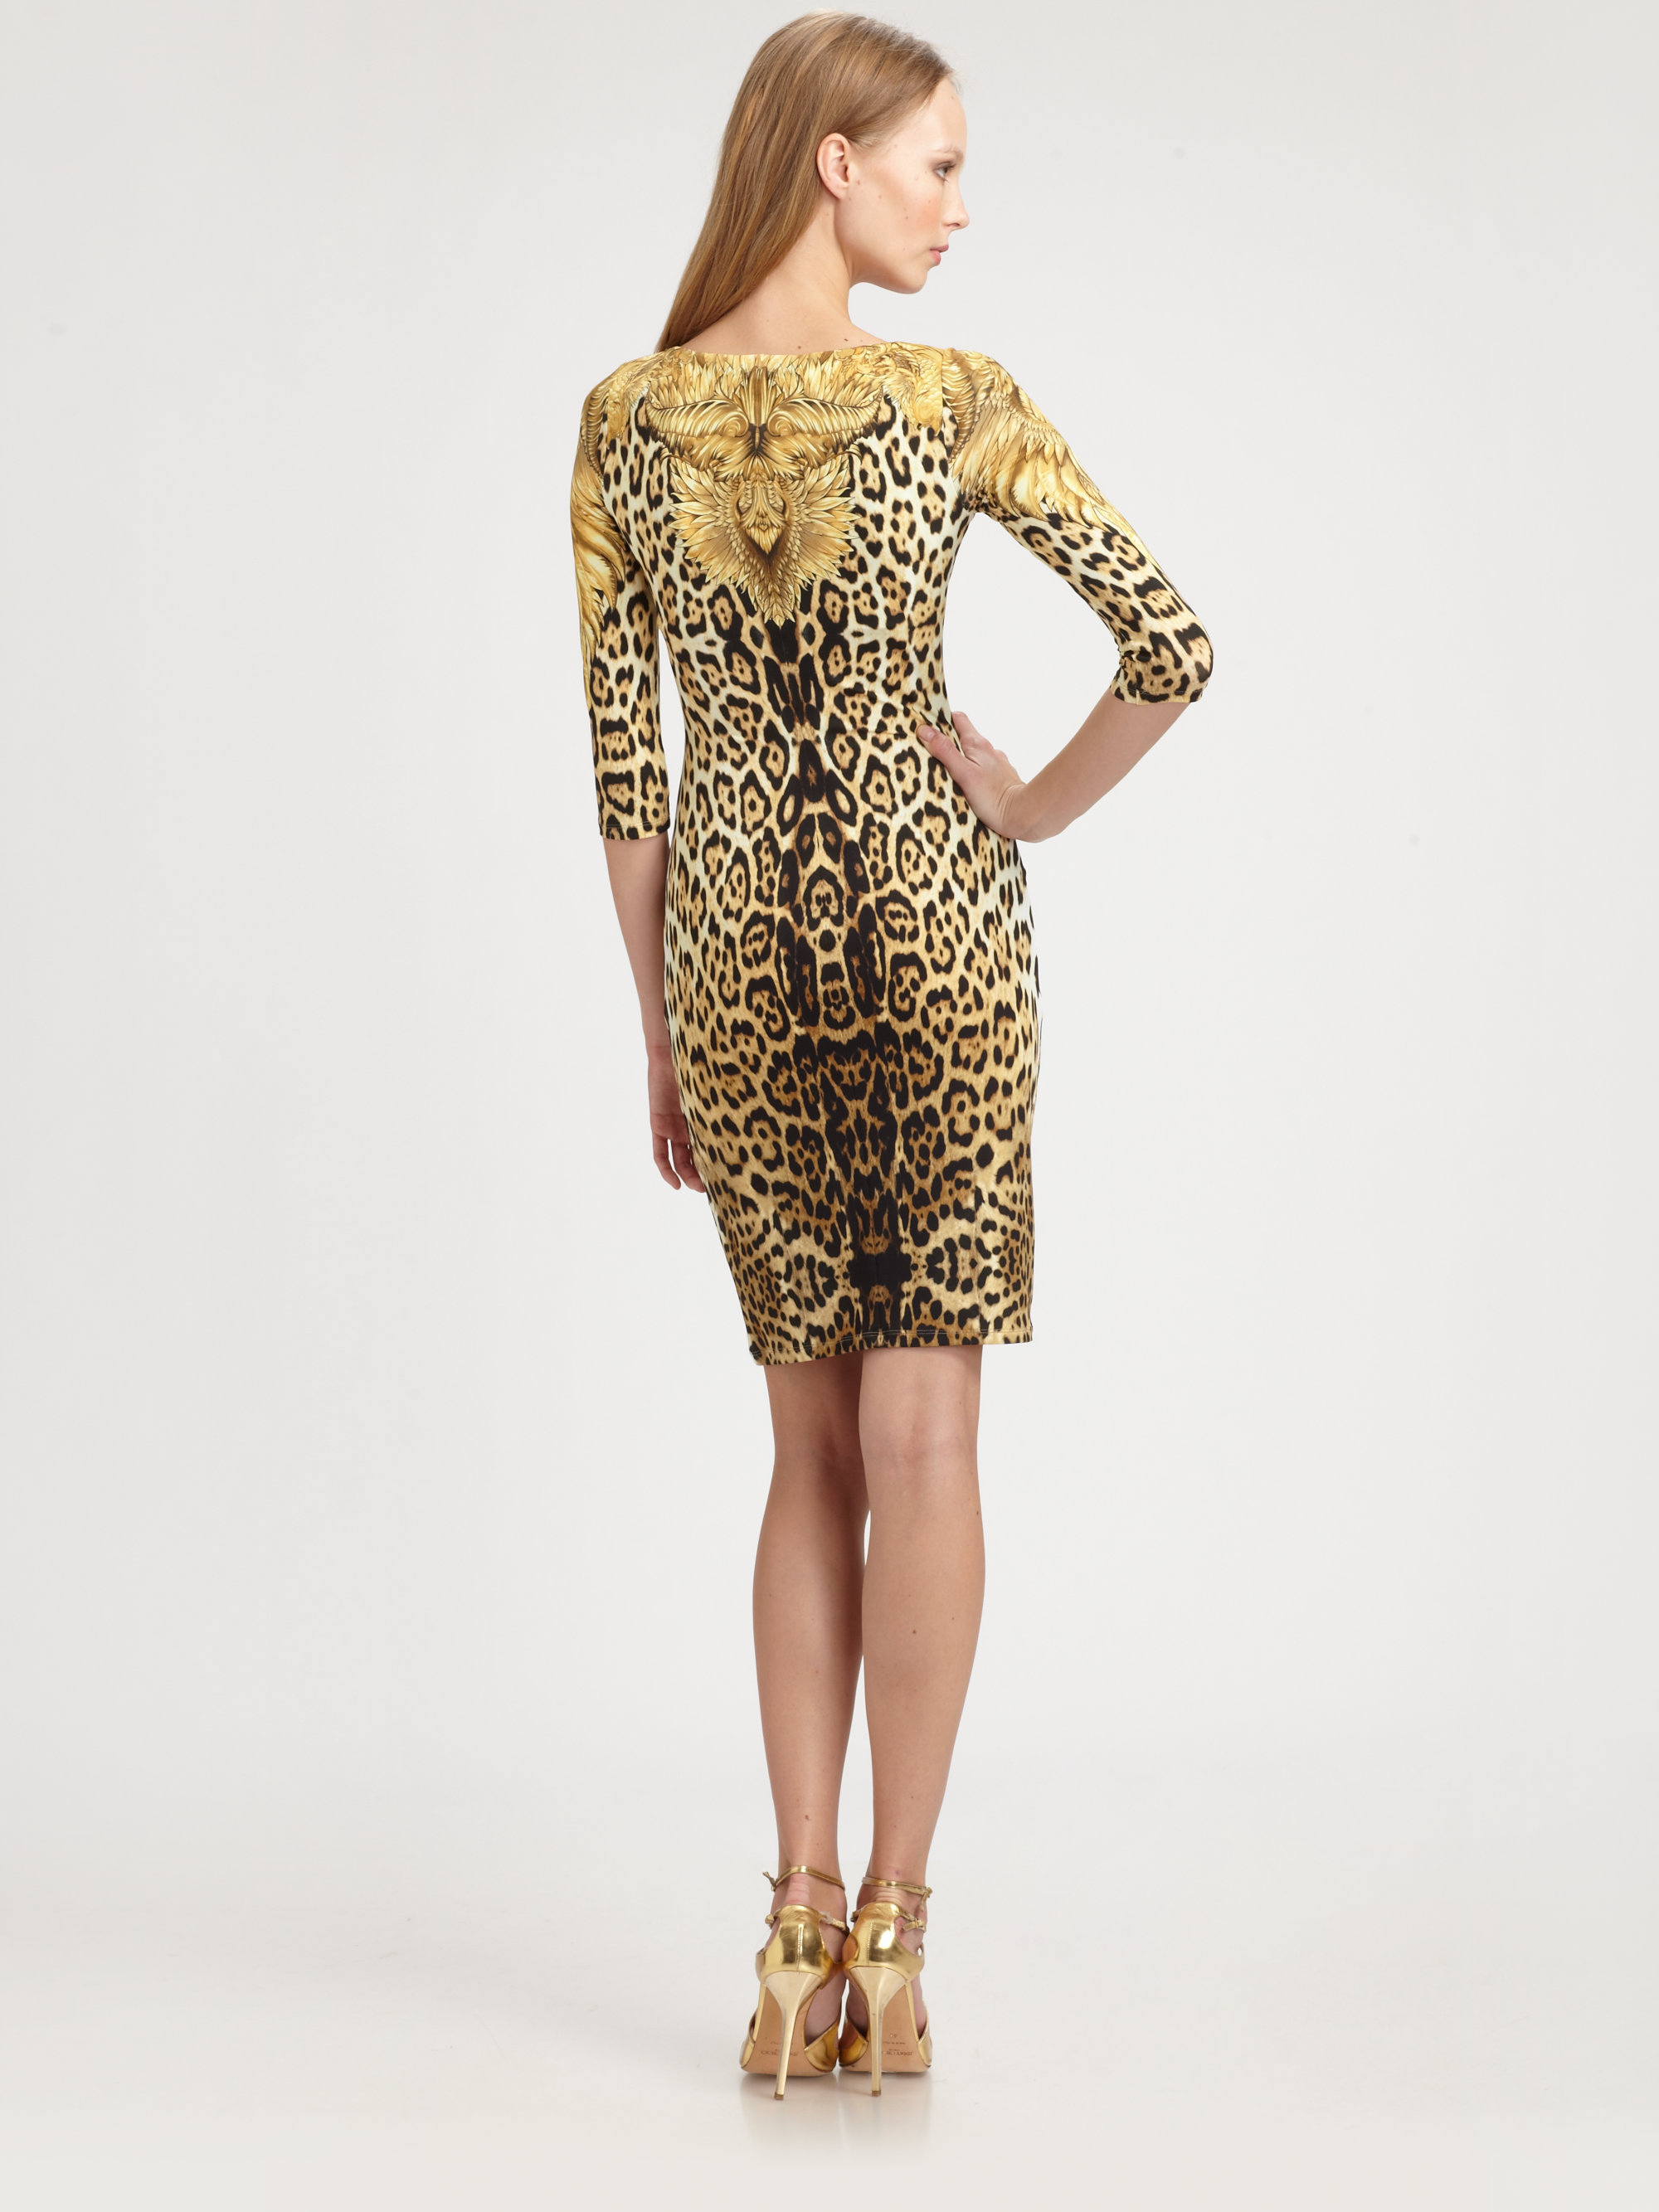 fc1776b96e Lyst - Roberto Cavalli Leopard Print Dress in Brown